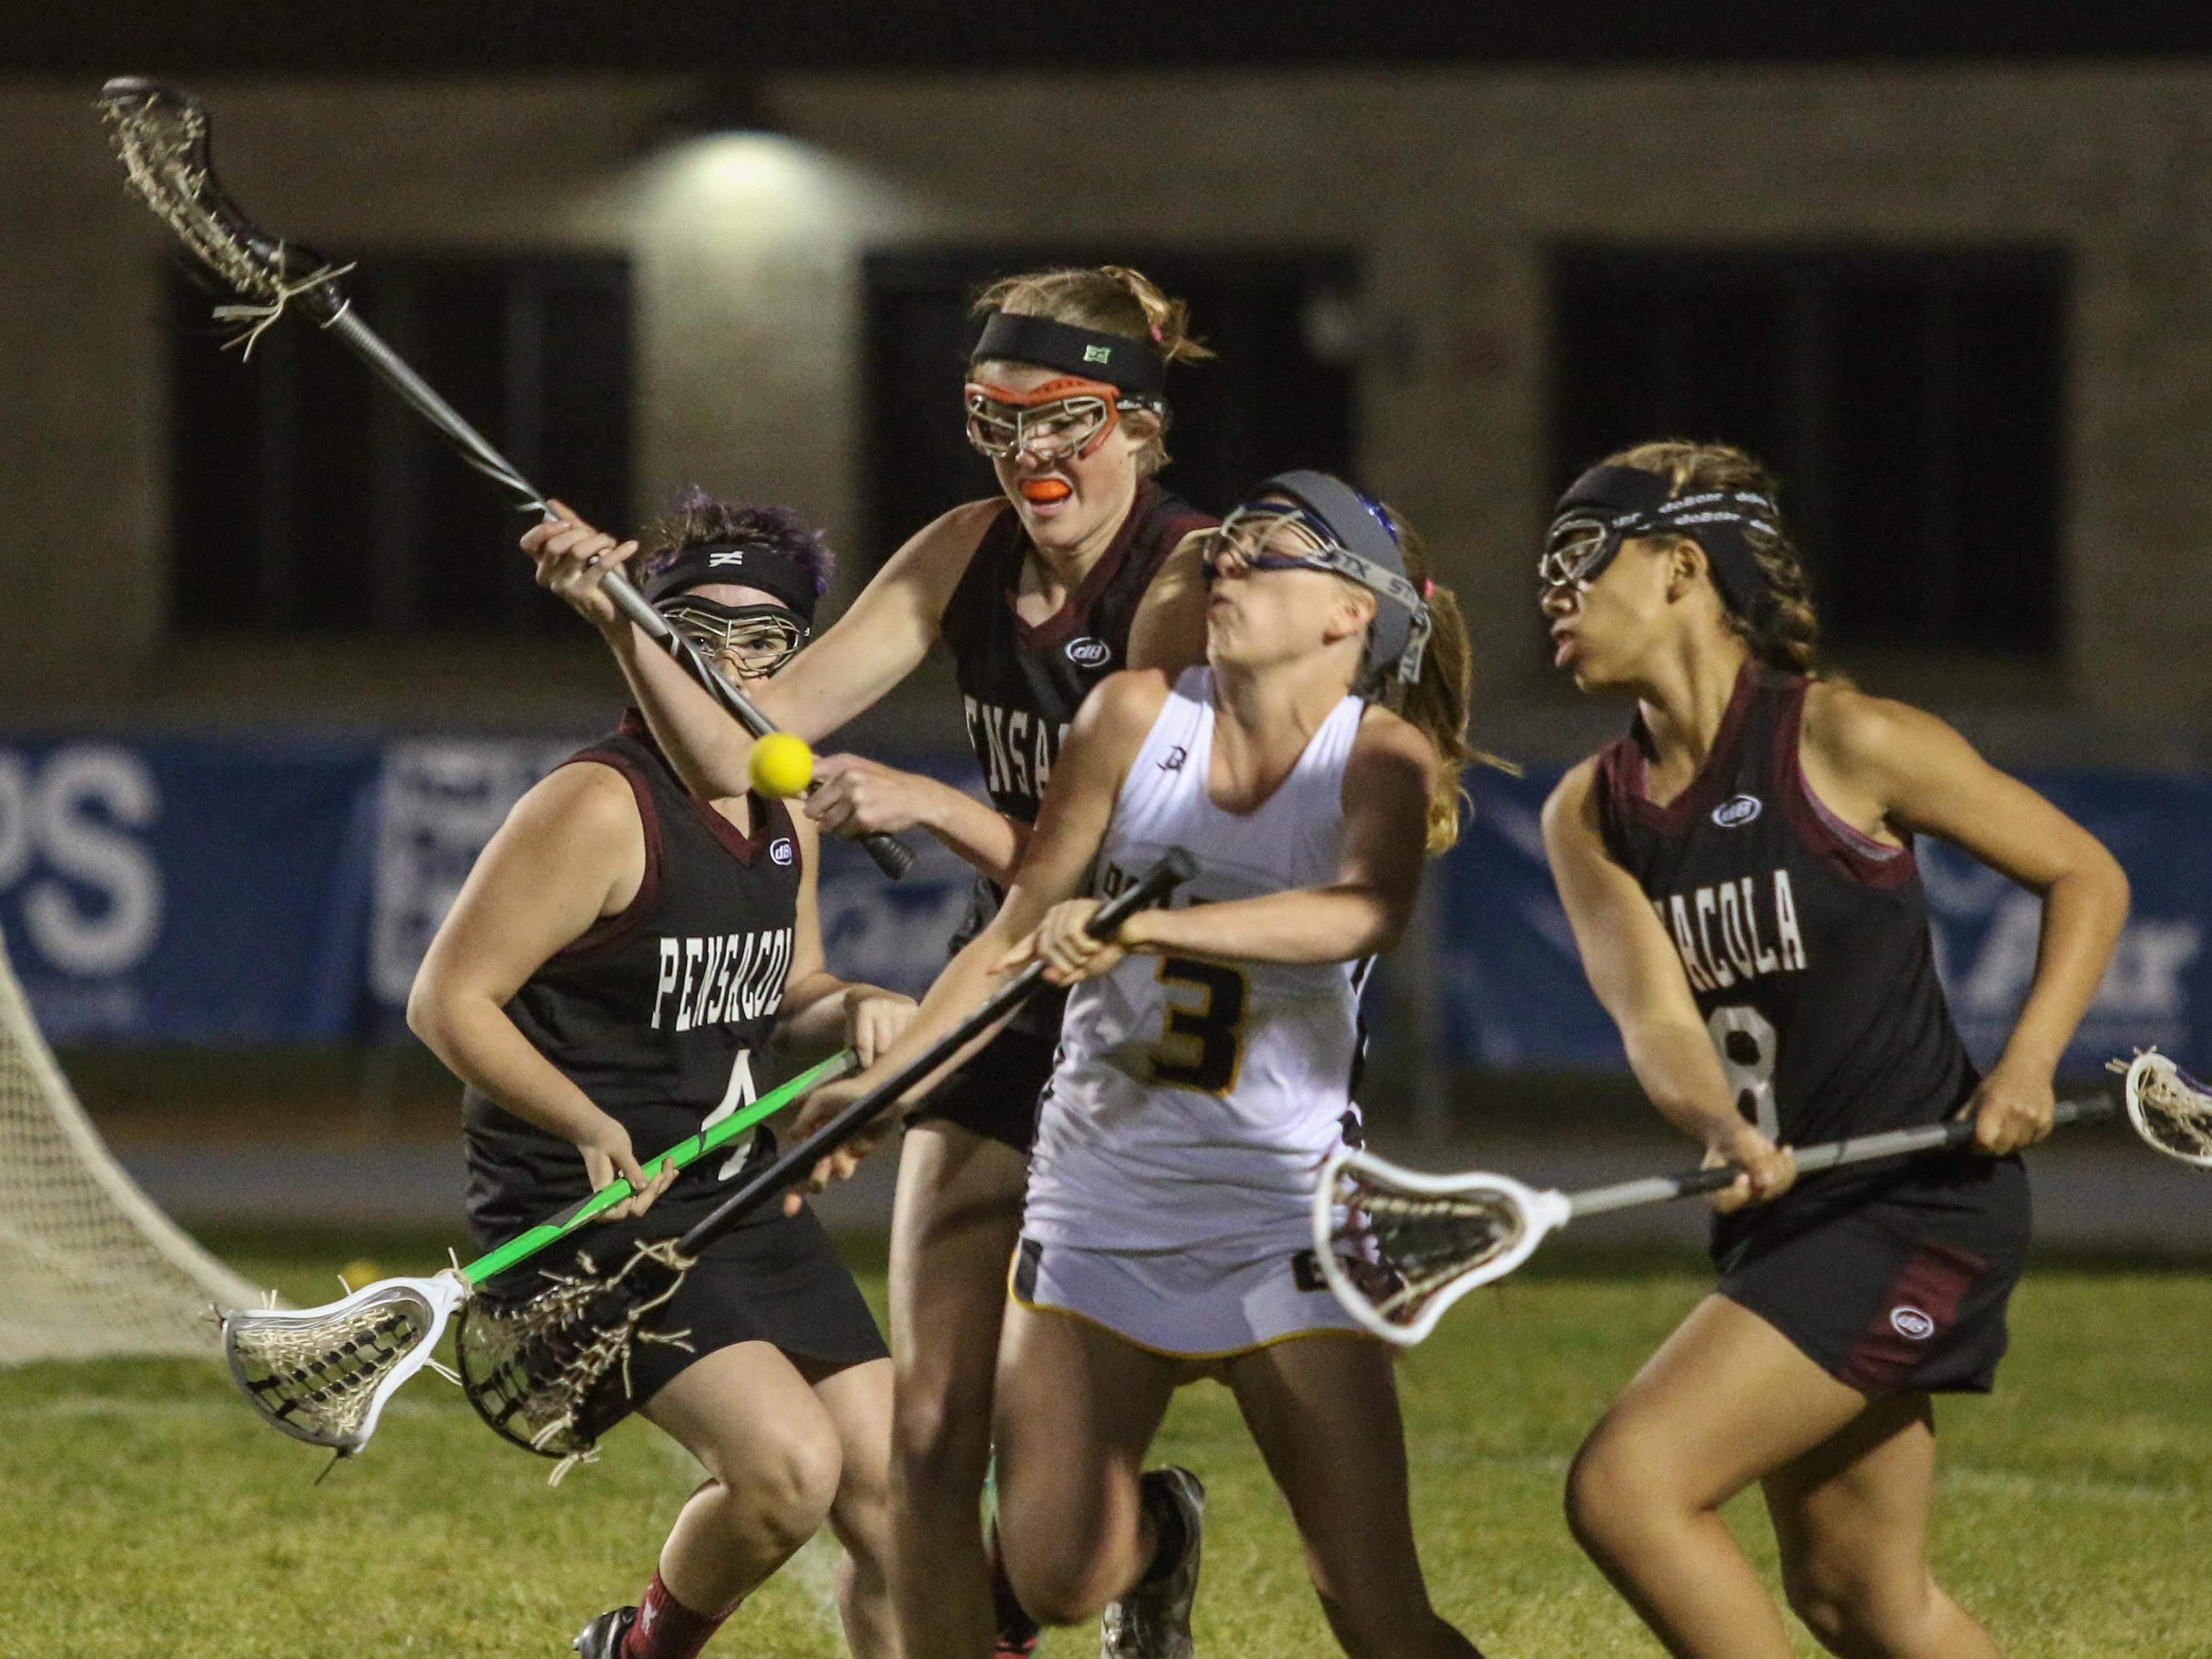 Gulf Breeze's Kaytlyn Carlson (3) gets hits from behind while trying to go between Pensacola's Roseanna Reber (4), Lillian Wiggins (27) and Kaitlyn Ham (18) Thursday night during the District 1-1A girls lacrosse championship game at Gulf Breeze High School.